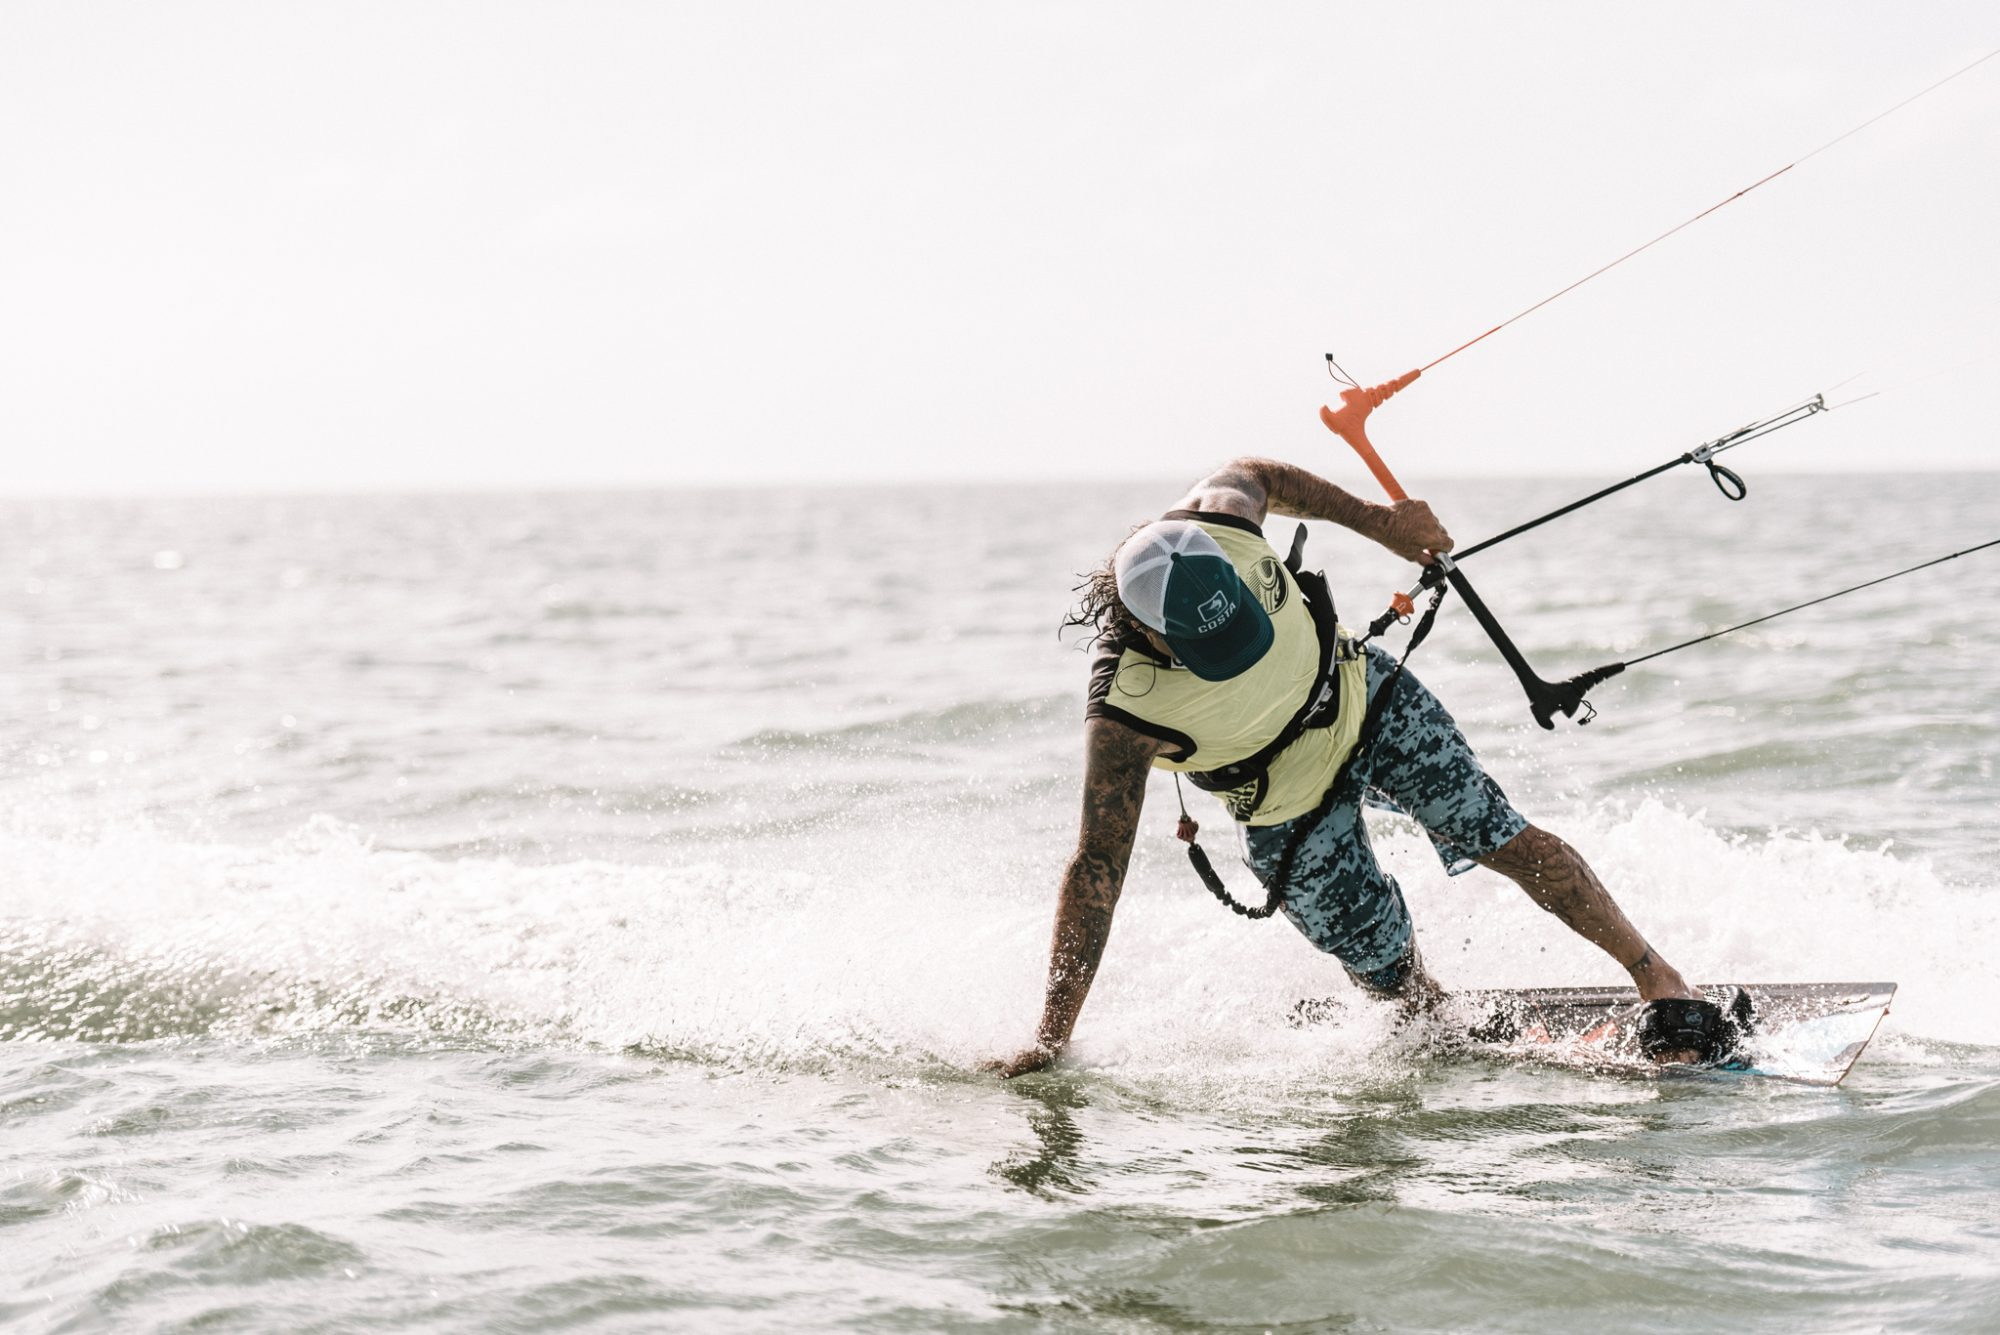 Kiting In Key West Photos 1 5 - Lifestyle Photography - The Florida Keys Way